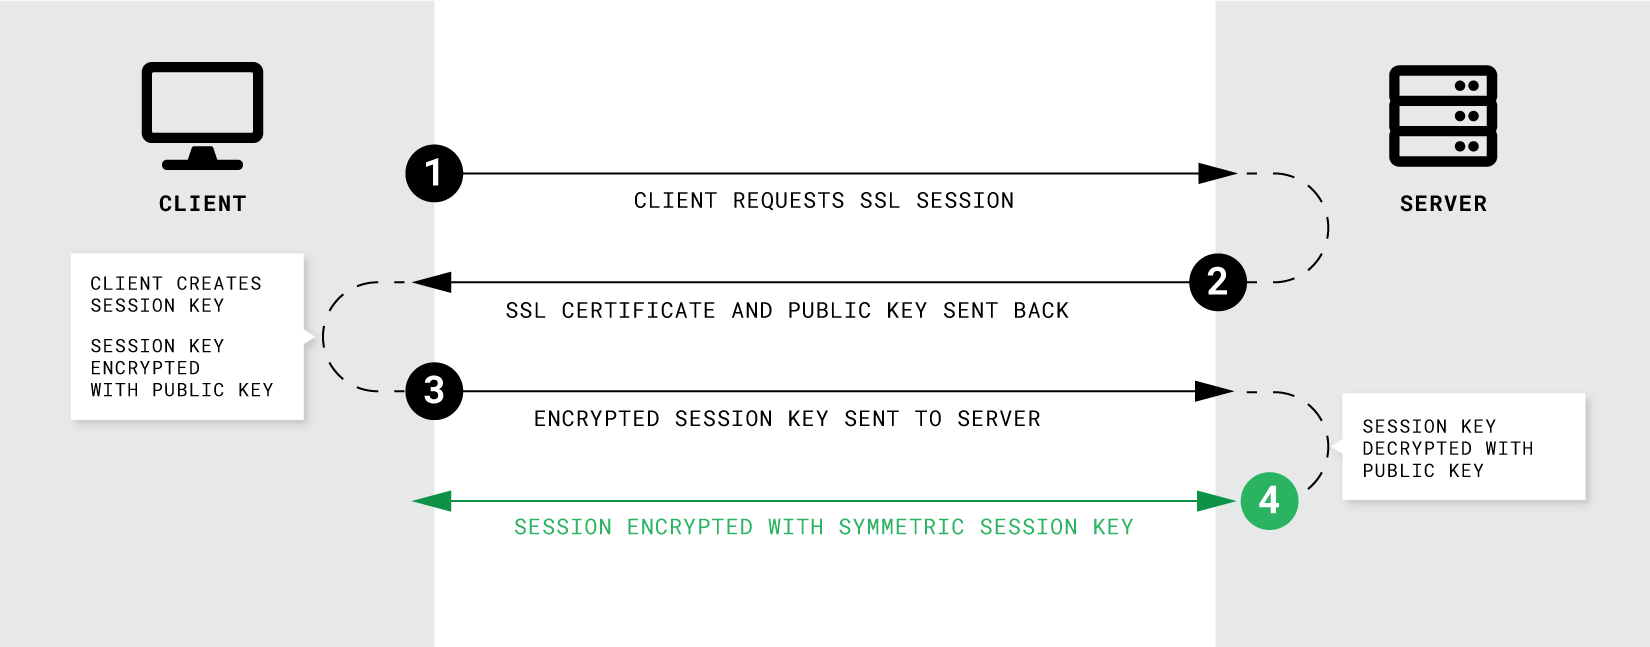 stackpath-ssl-handshake-process-2x.png